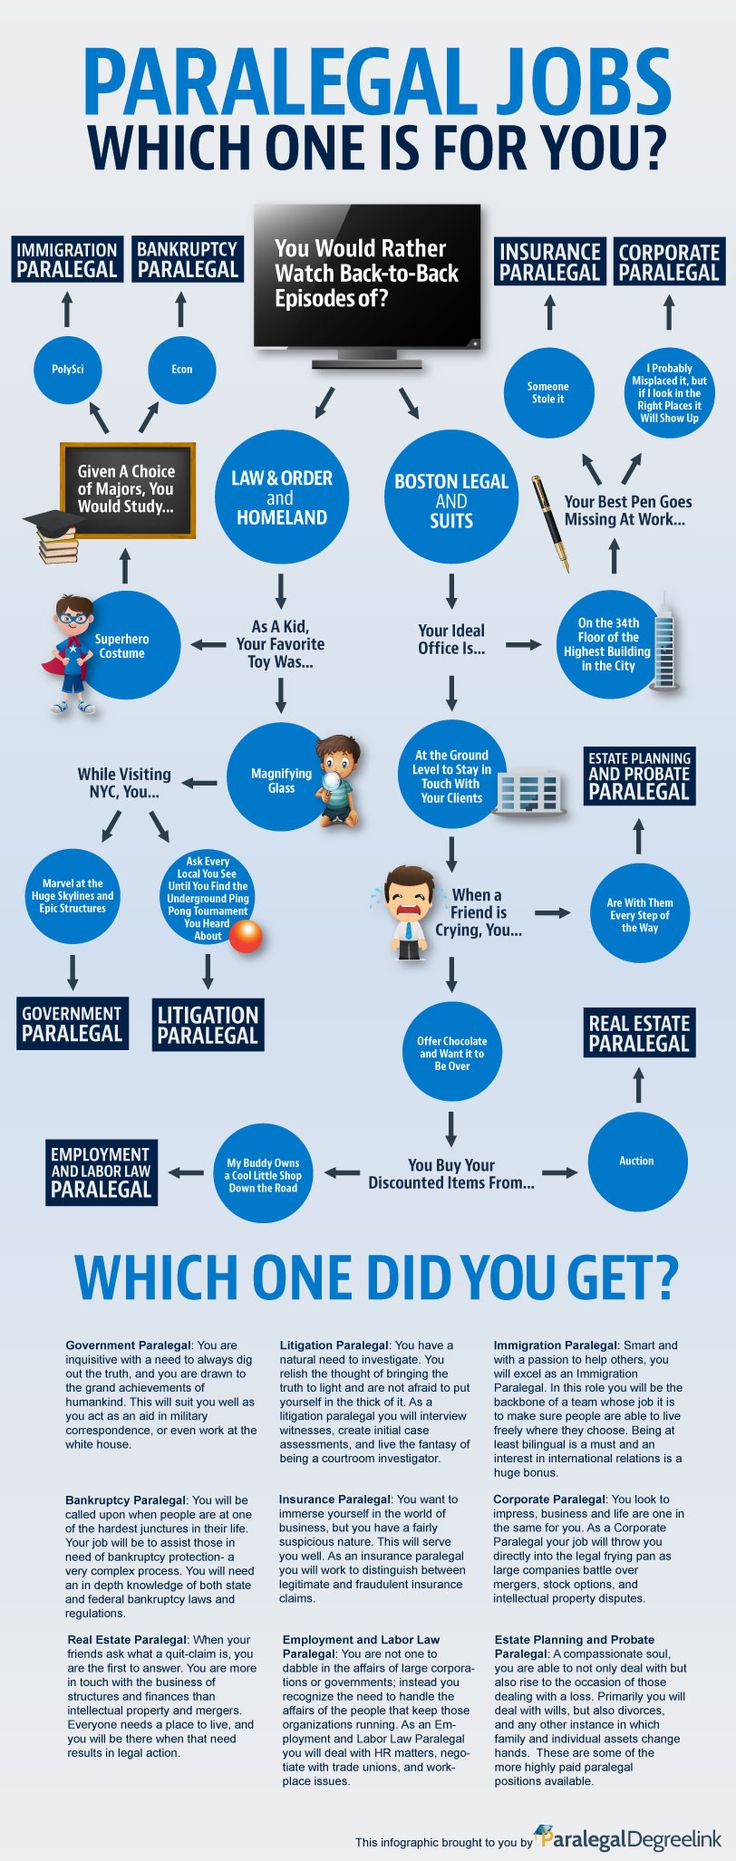 Paralegal Jobs: Which One Is For You? #Infographic #ParalegalJobs #Career